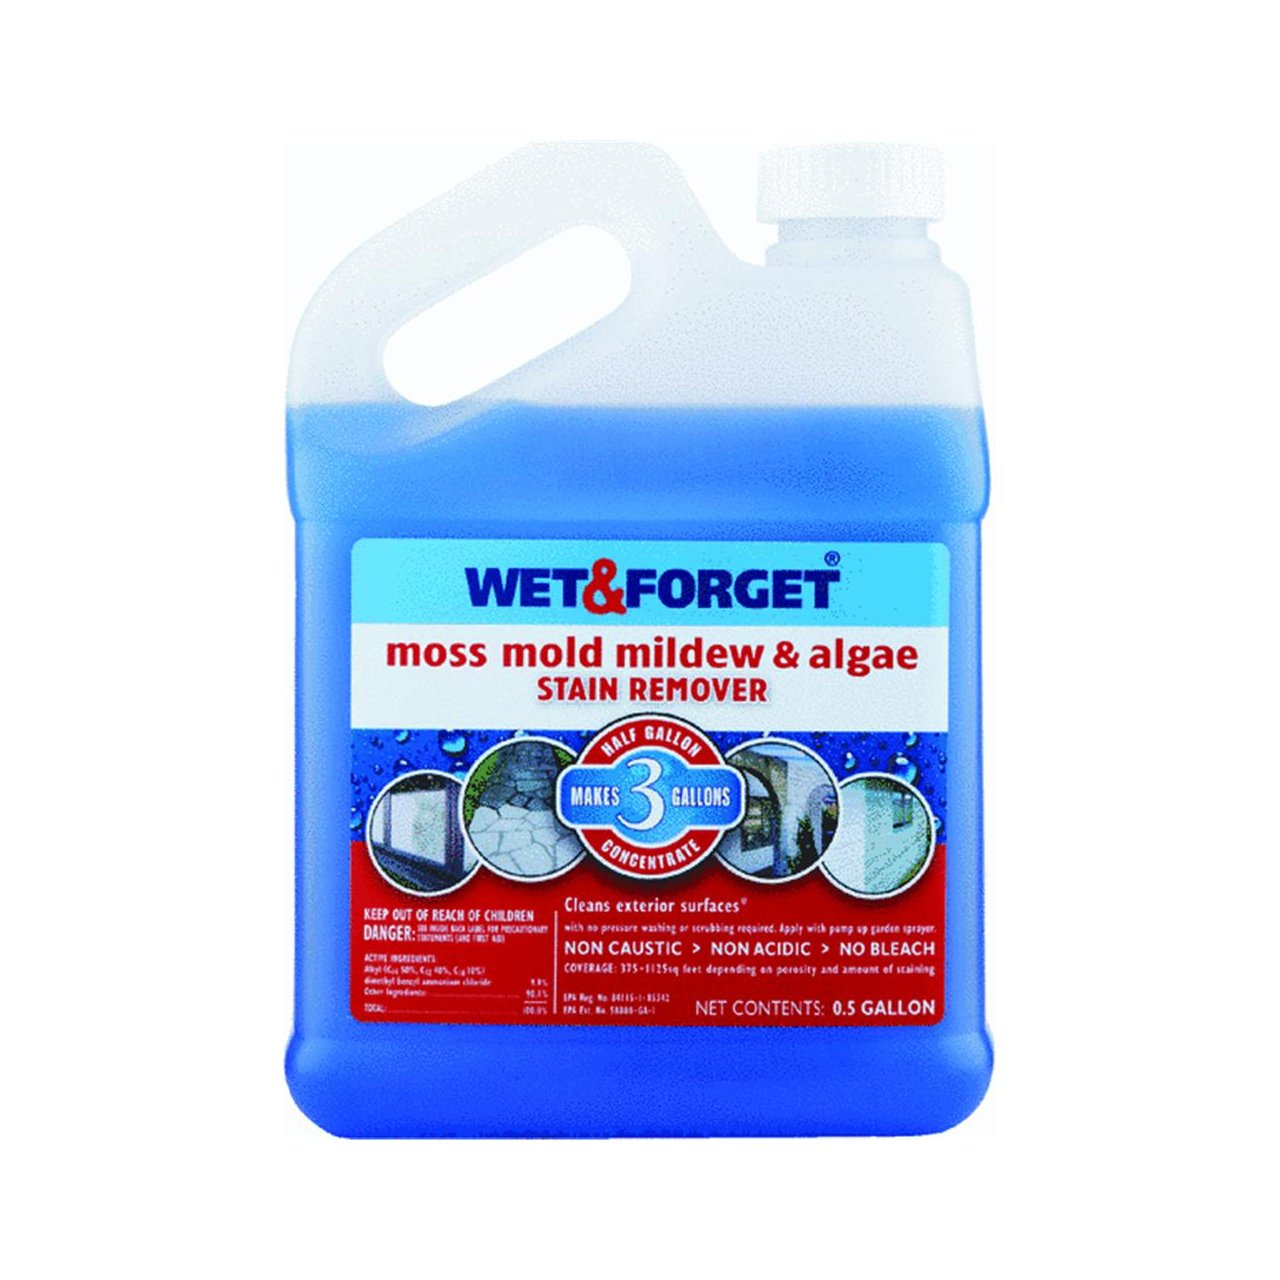 Wet And Forget Moss Mold Mildew & Algae Stain Remover